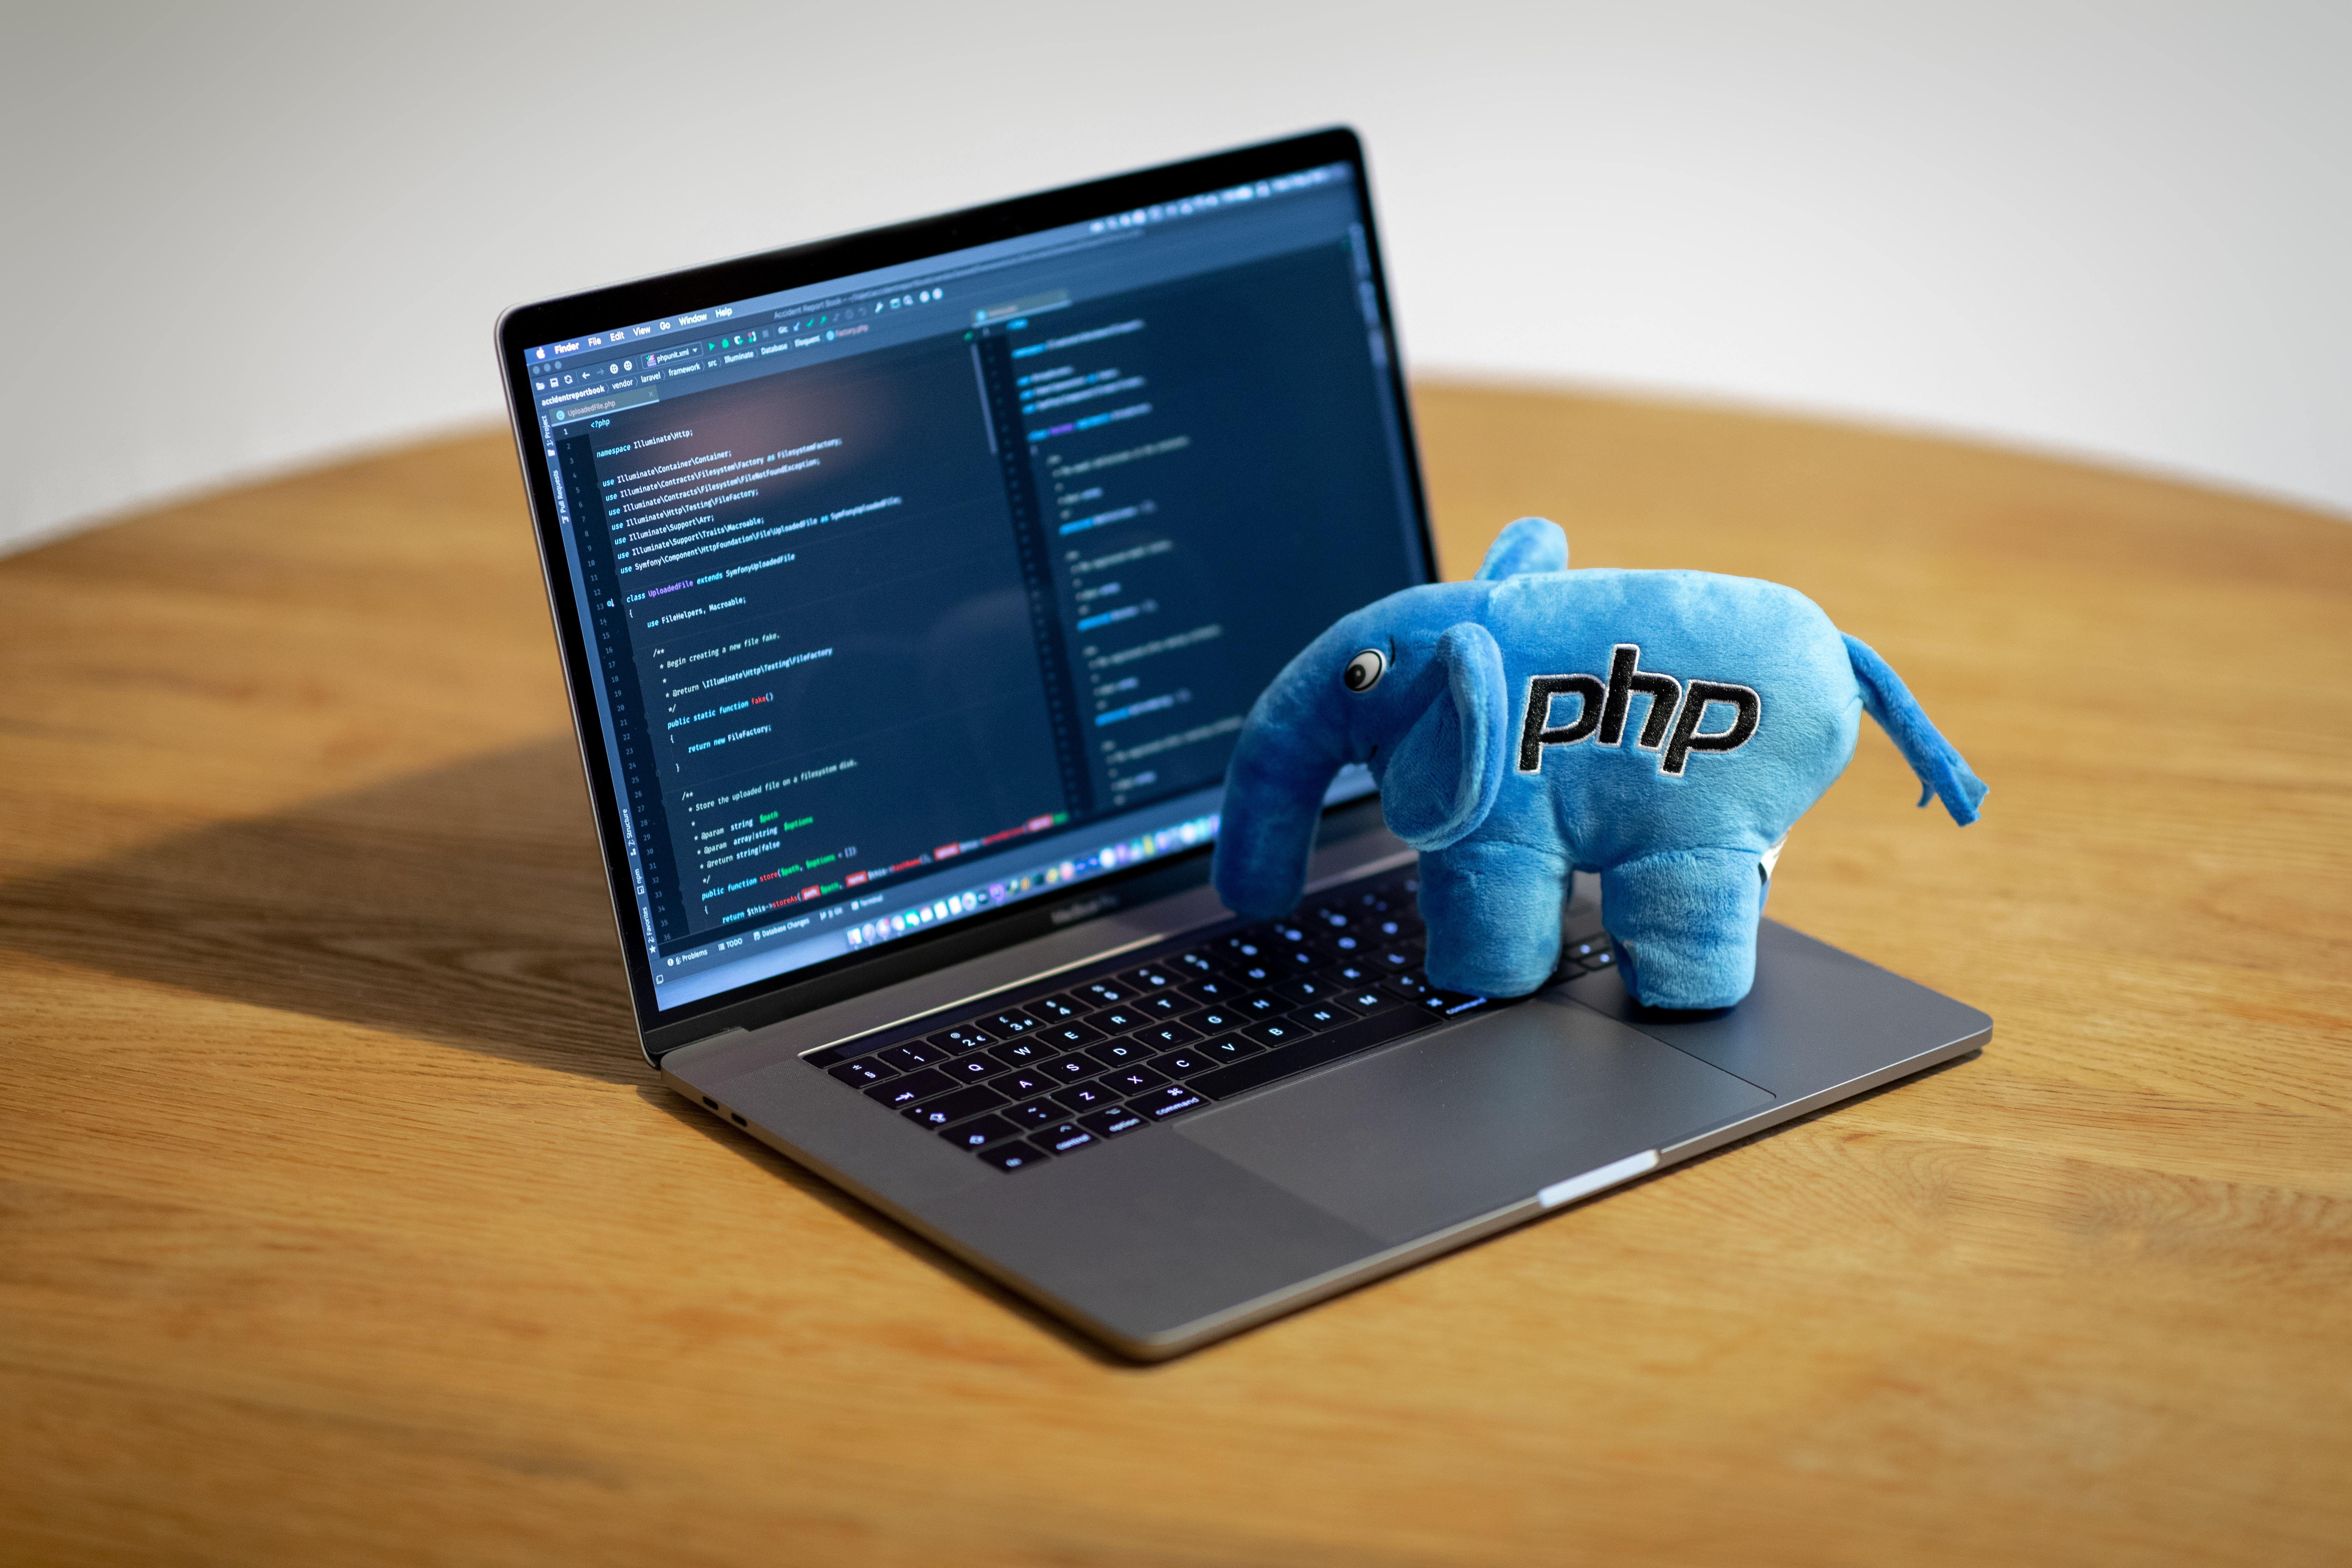 a PHP plush on top of a laptop